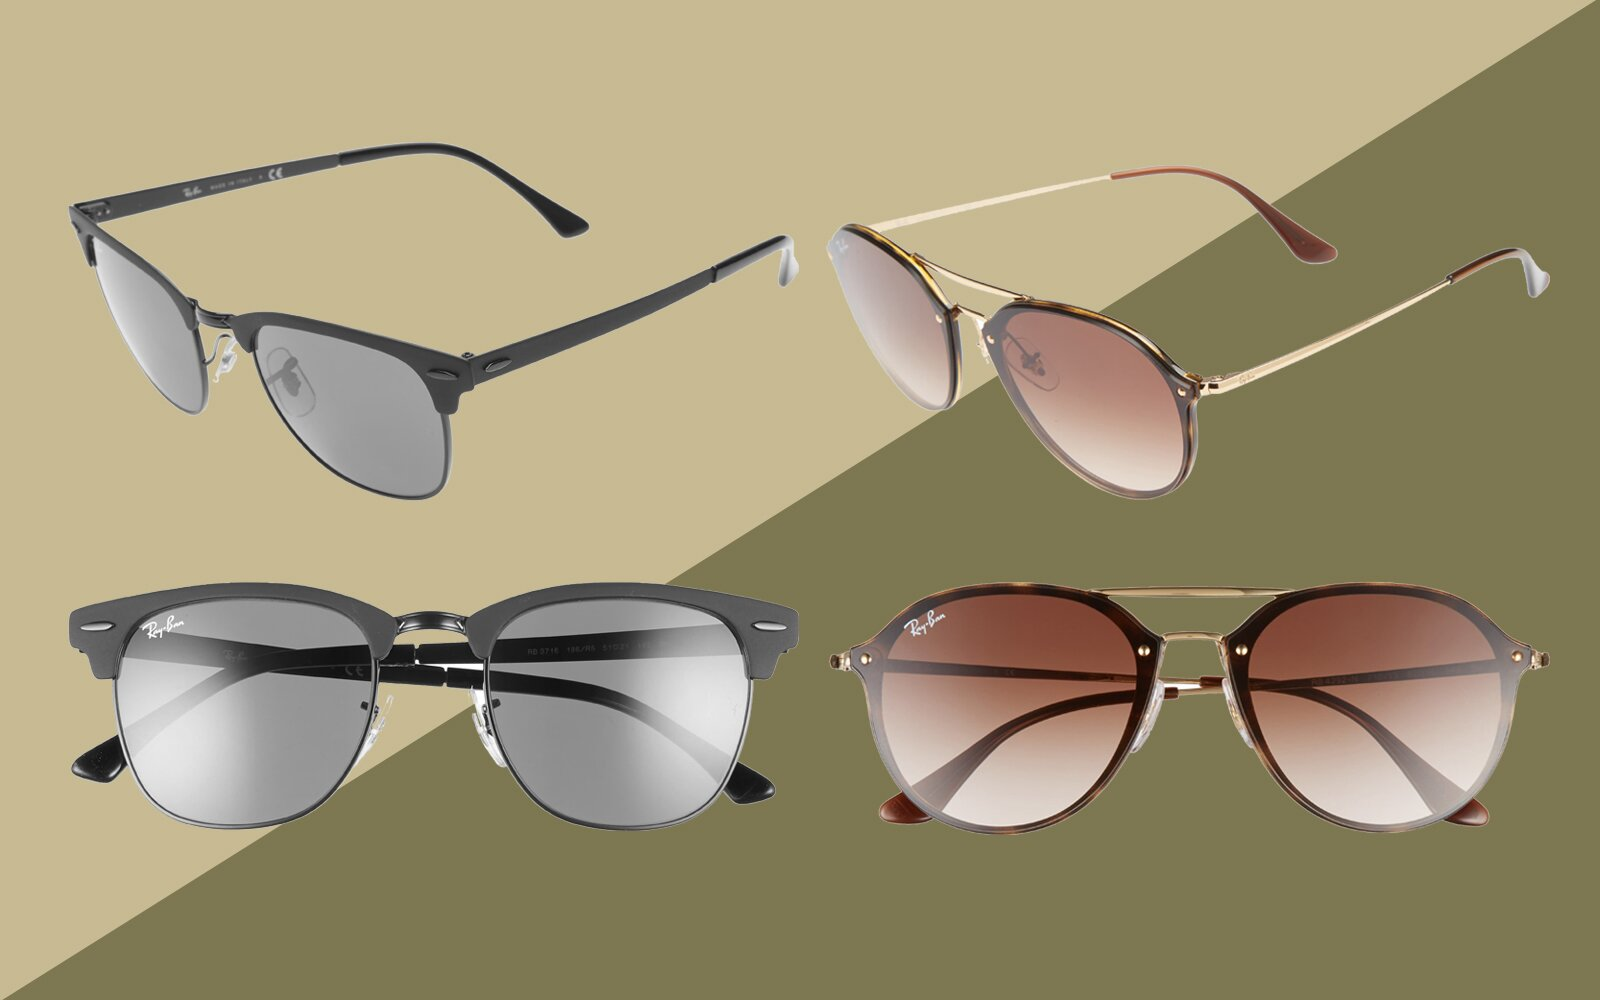 Ray-Ban Sunglasses Sale at Nordstrom: Shop Styles Meghan Markle, Kate  Middleton Wore for Less   Travel + Leisure